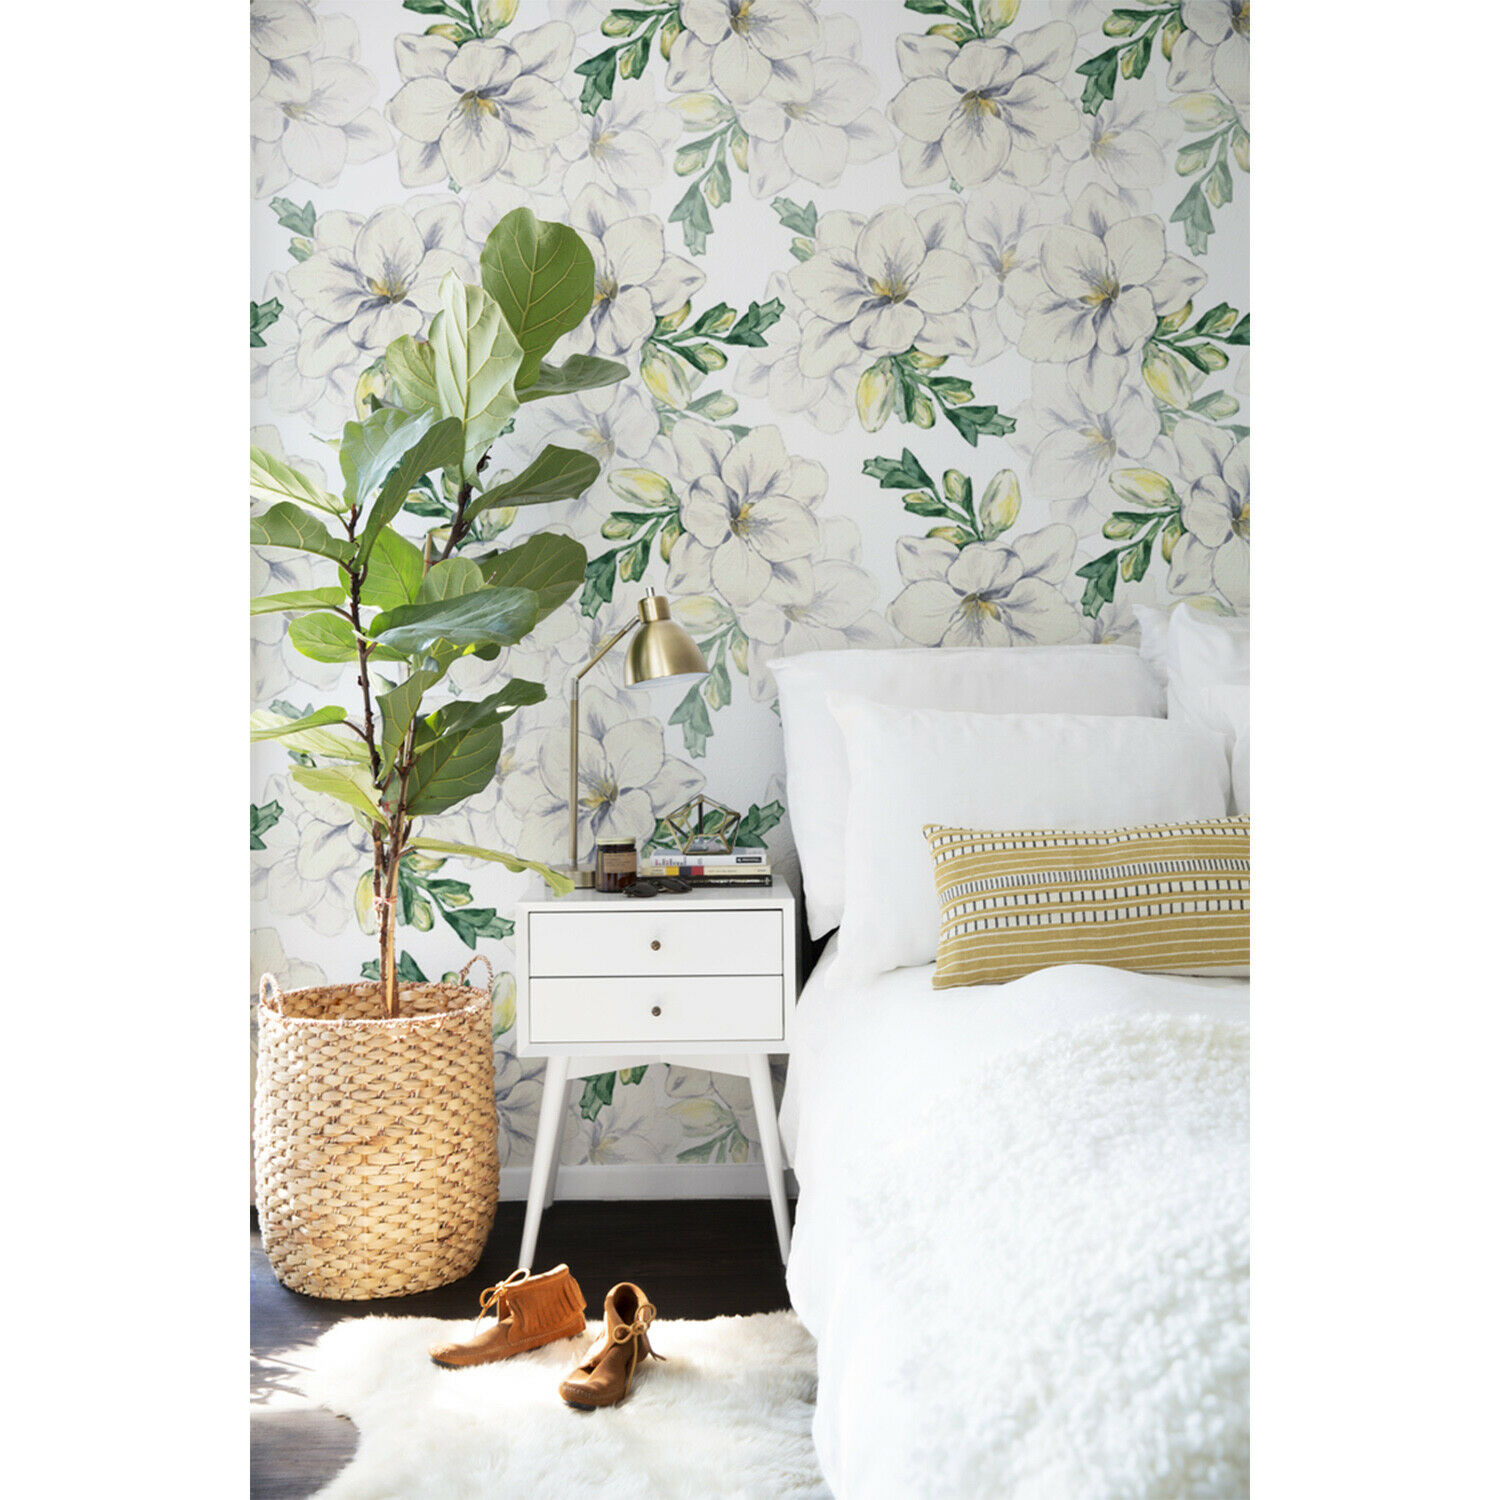 Freesia decor Flowers self-adhesive mural Leaves removable wallpaper